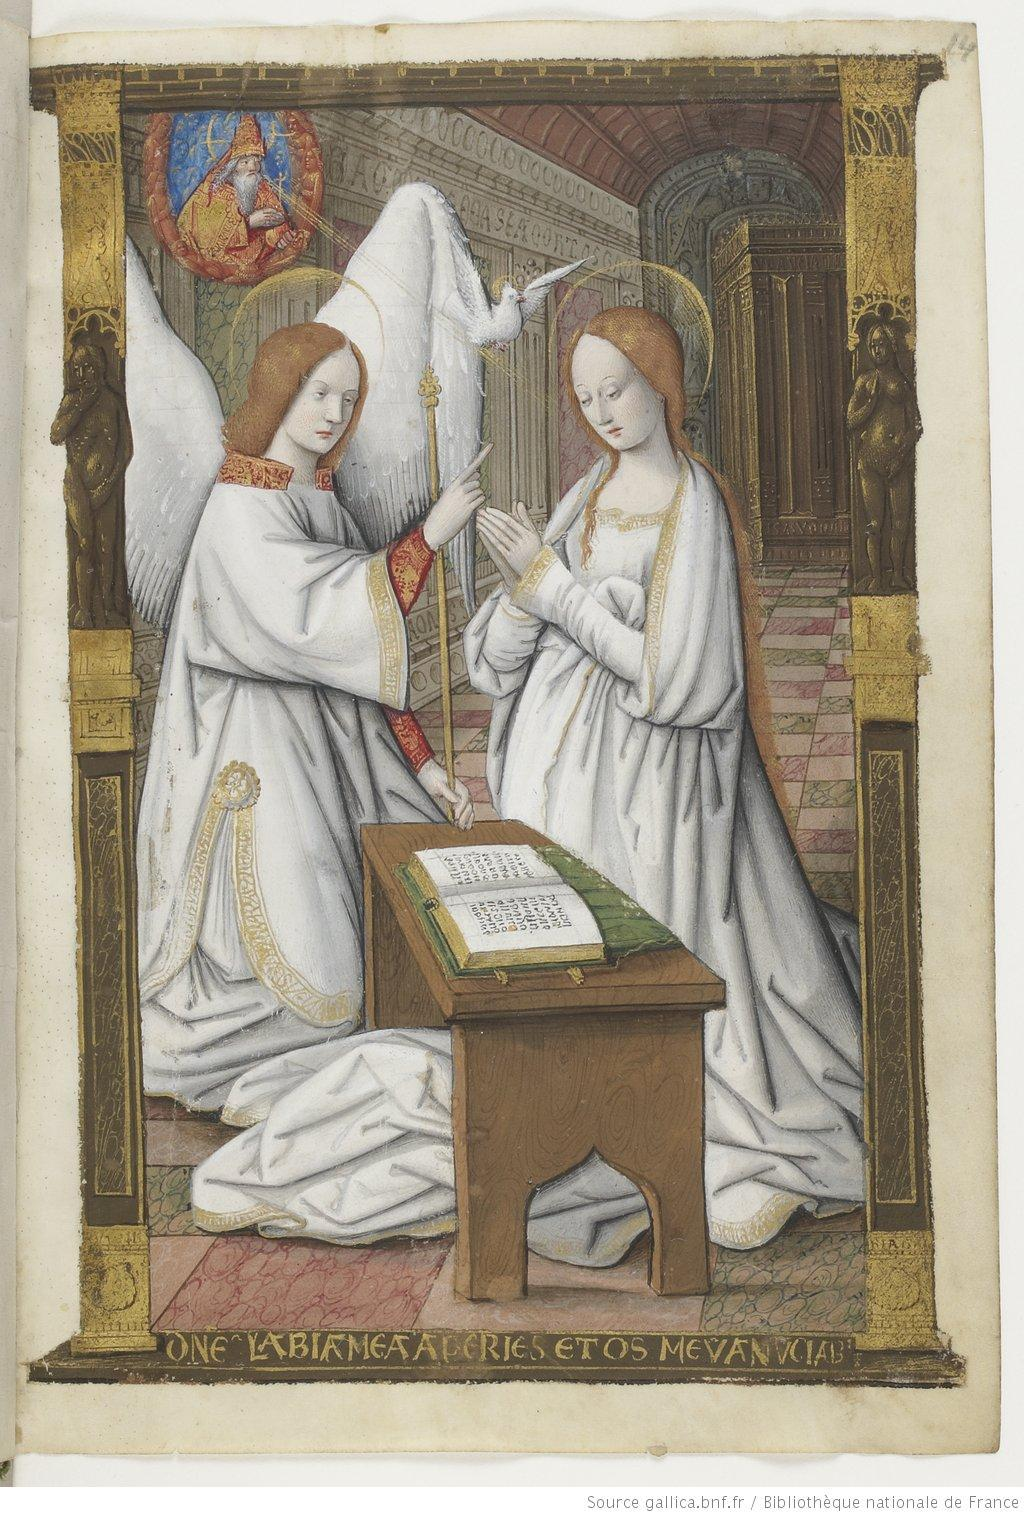 Annunciation. Petites Heures d'Anne de Bretagne (Little Book of Hours of Anne of Brittany), c. 1503. Artist not known. Bibliothèque Nationale de France. Anne de Bretagne as St. Mary with her second husband, the French King Louis XII, as Archangel Gabriel. A book of hours made for a wealthy patron often was extremely lavish, with full-page miniatures. In this book, the only saint to be honored with a miniature in the section of intercessory prayers is Saint Louis.